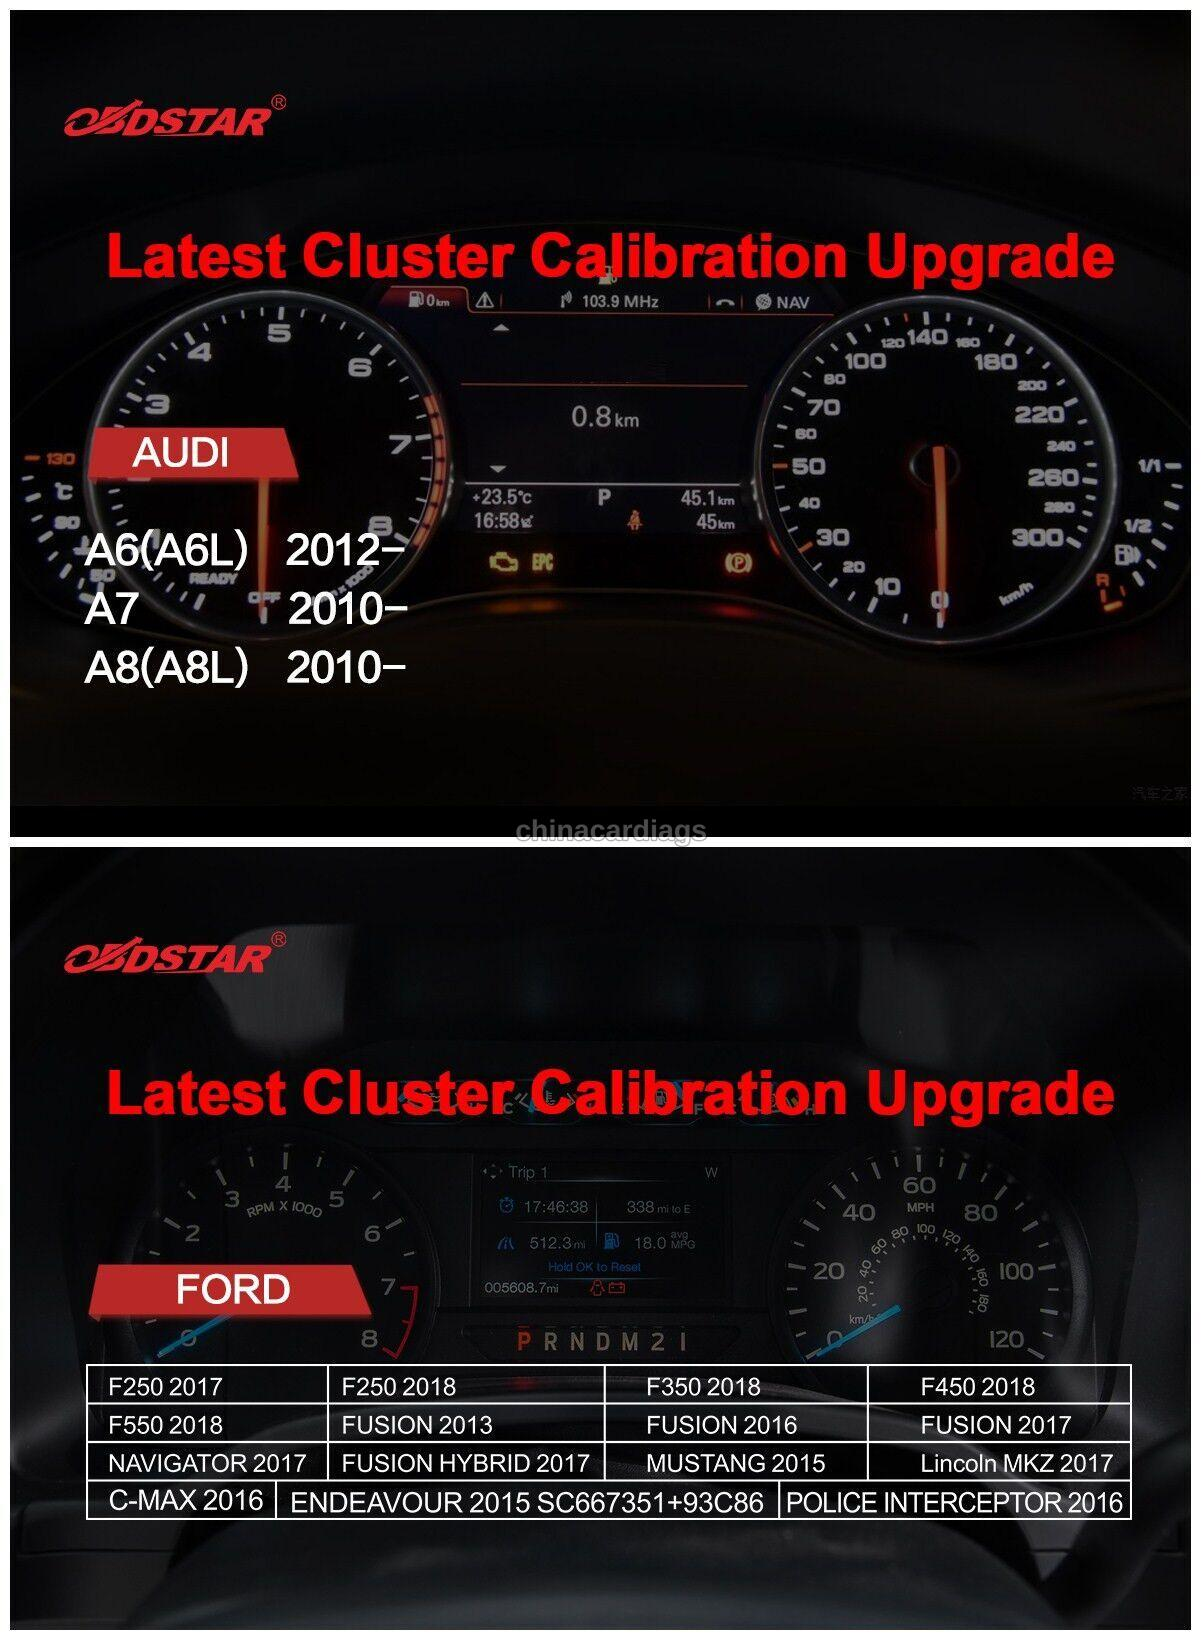 Latest-Cluster-Calibration-Upgrade-for-AUDI-And-Ford